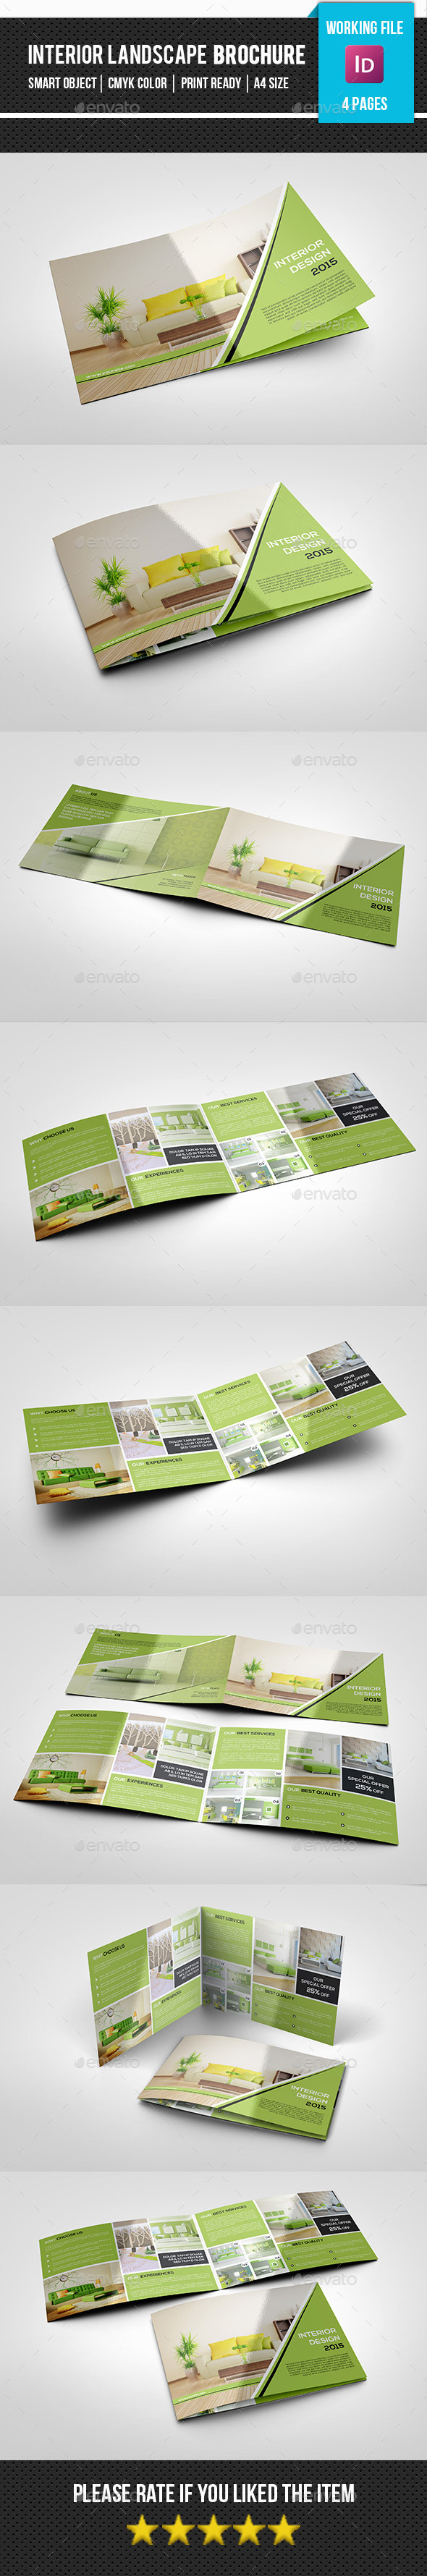 GraphicRiver Bifold Interior Design Studio Brochure-V269 11940557